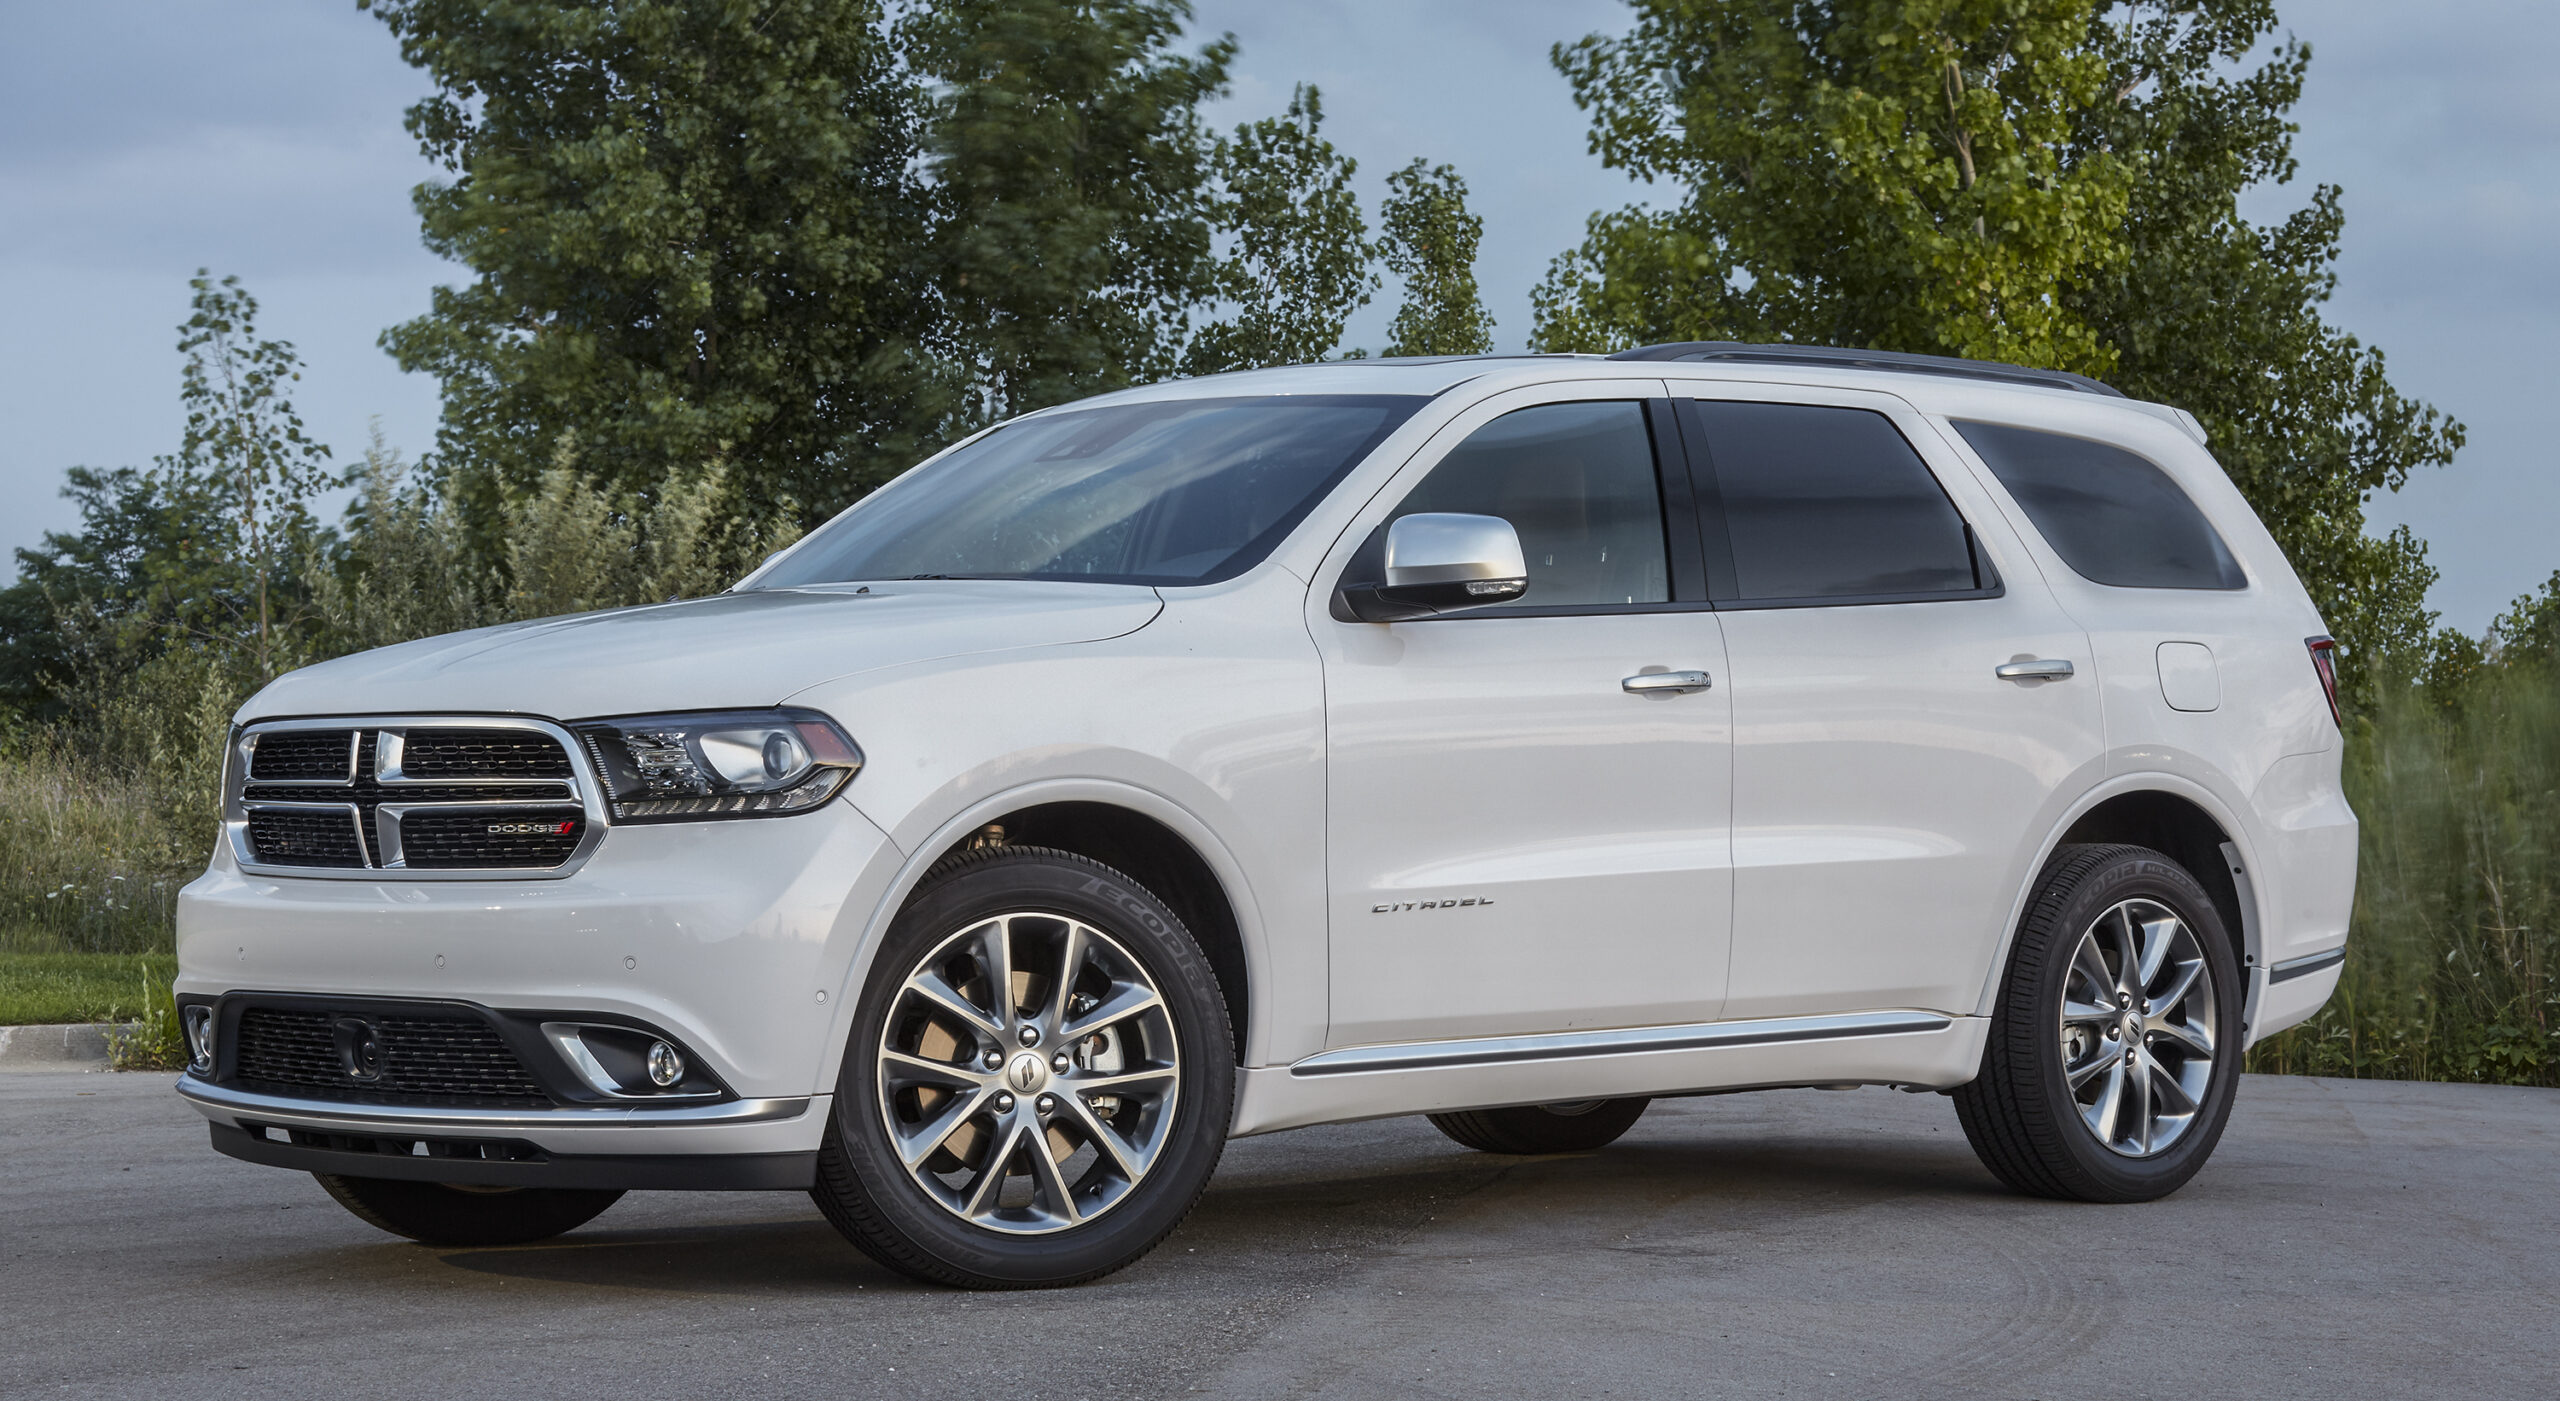 2020 Dodge Durango Fotos